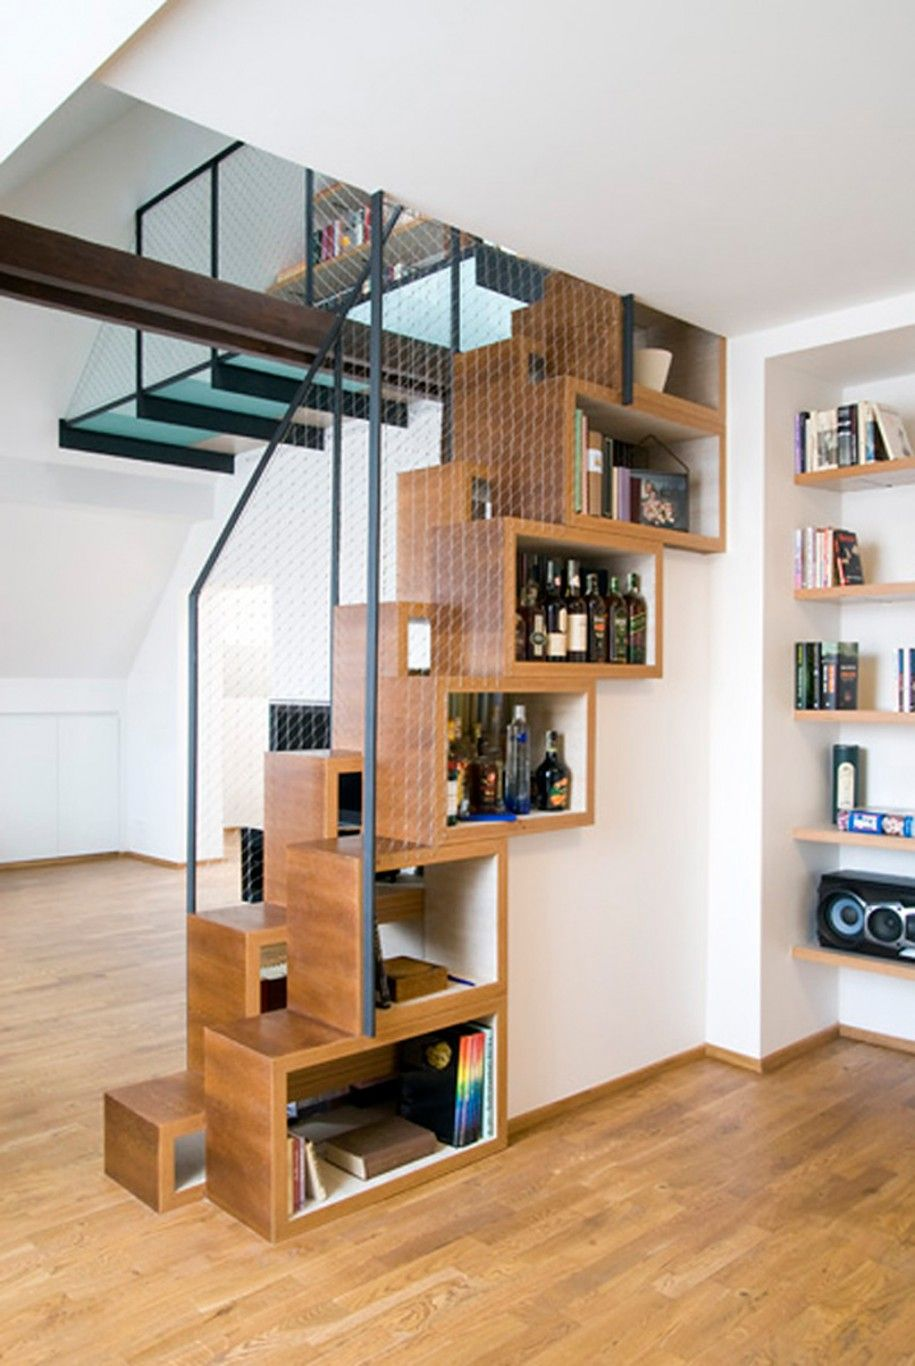 Home Ideas For Small Spaces Part - 28: Terrific Staircases For Small Spaces: Surprising Unique And Smart Saving Space  Ideas Staircase And Storage